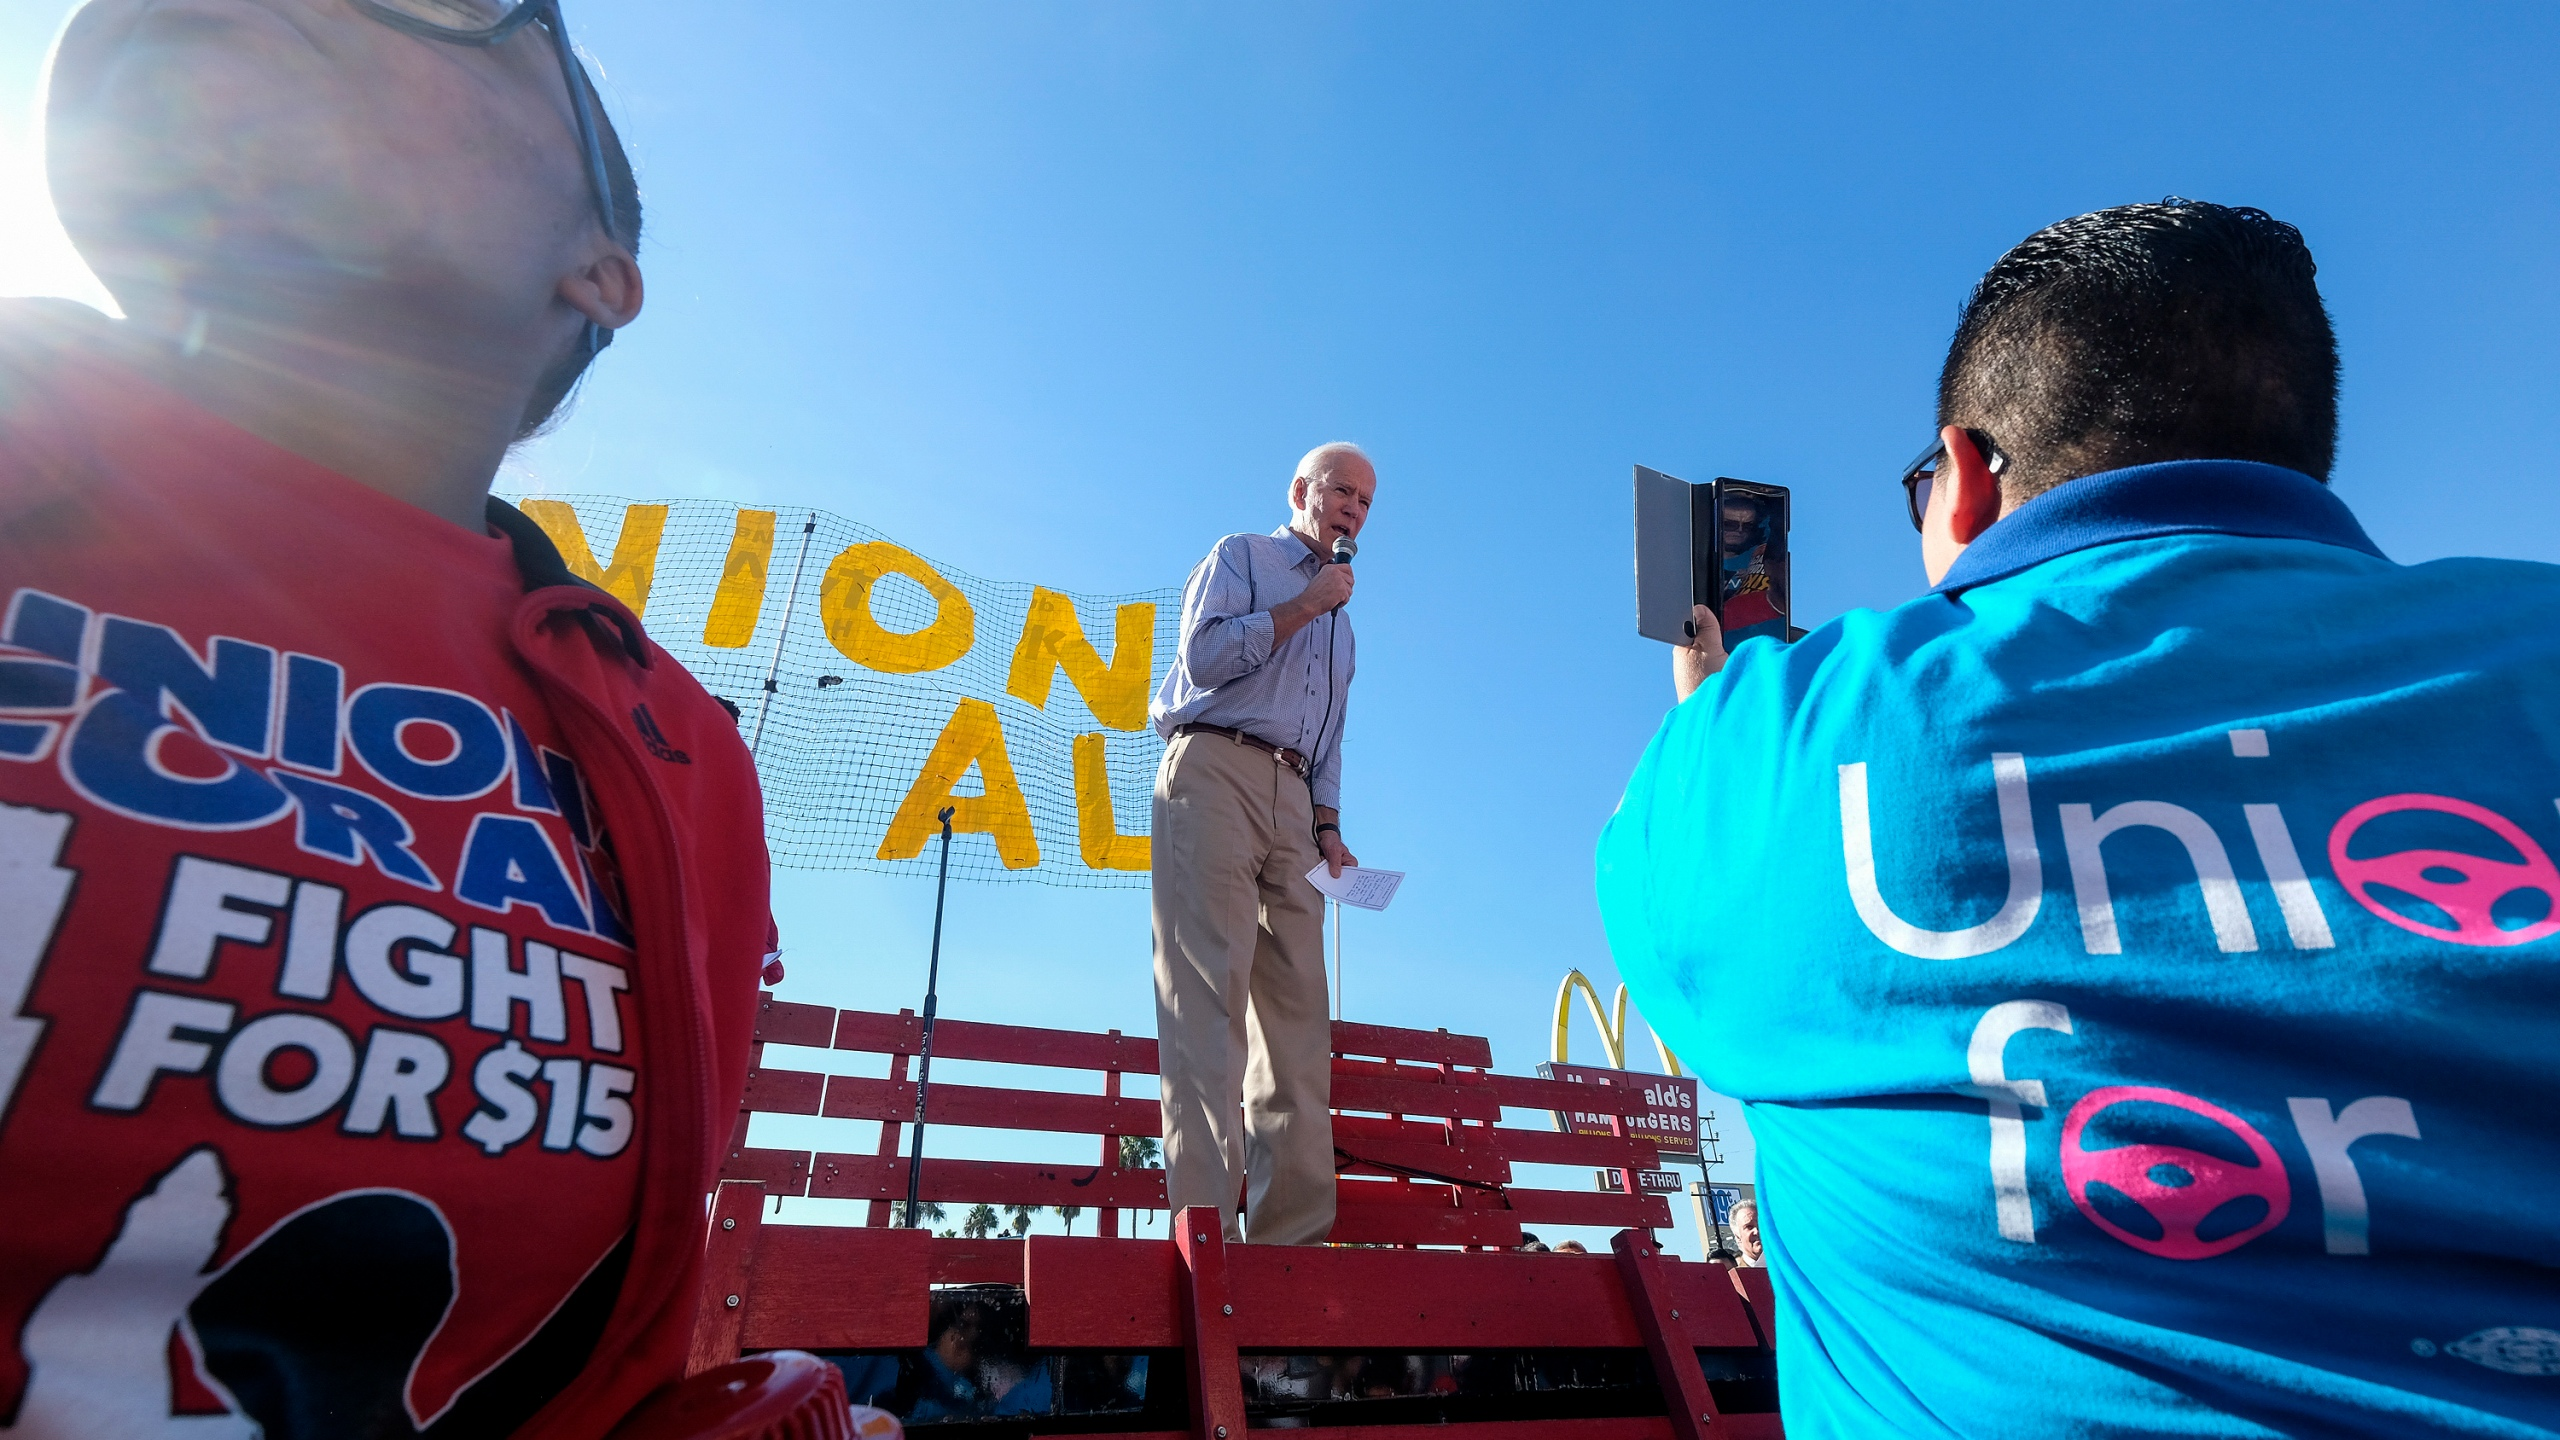 In this Dec. 19, 2019, file photo Democratic presidential candidate former Vice President Joe Biden, speaks at a rally in support of McDonald's cooks and cashiers who are demanding higher wages and union rights, outside a McDonald's restaurant in Los Angeles. (AP Photo/Ringo H.W. Chiu, File)